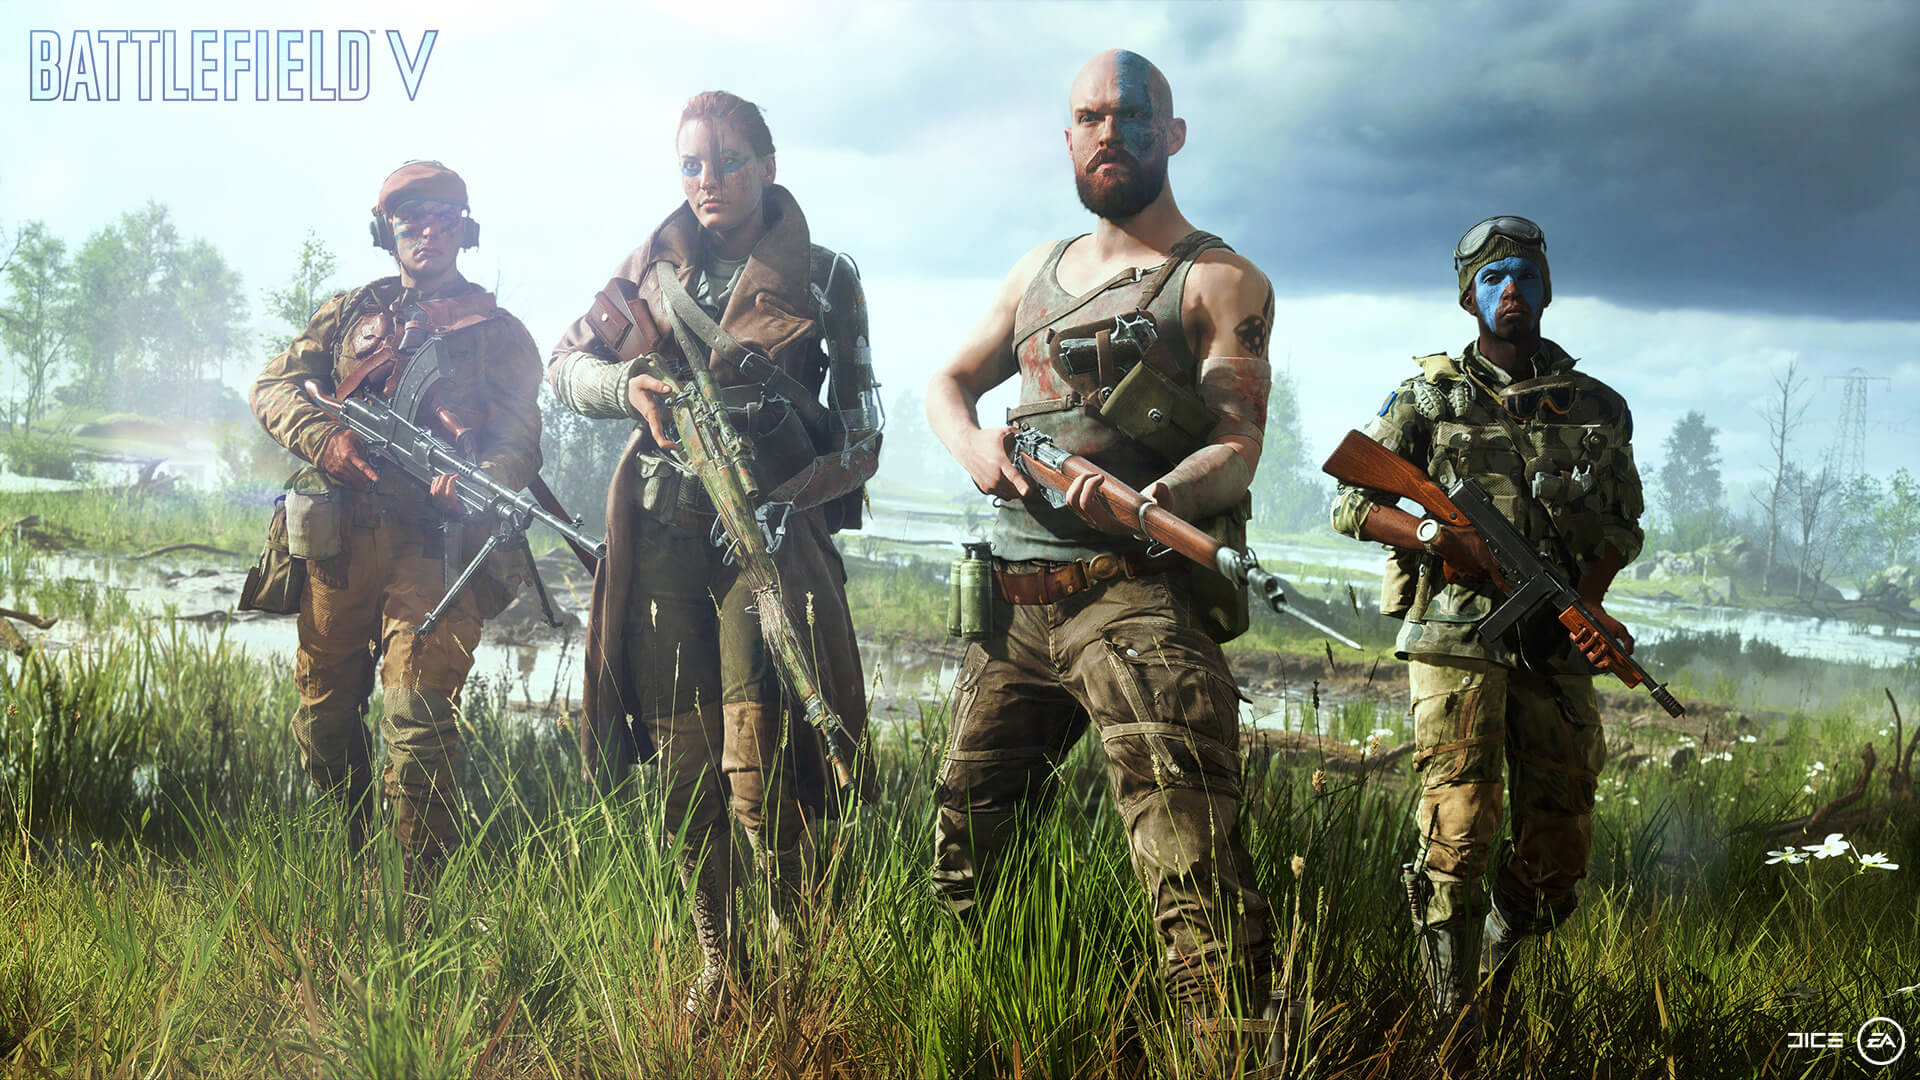 Battlefield 5 Update 4.6 releases later today, full patch notes revealed